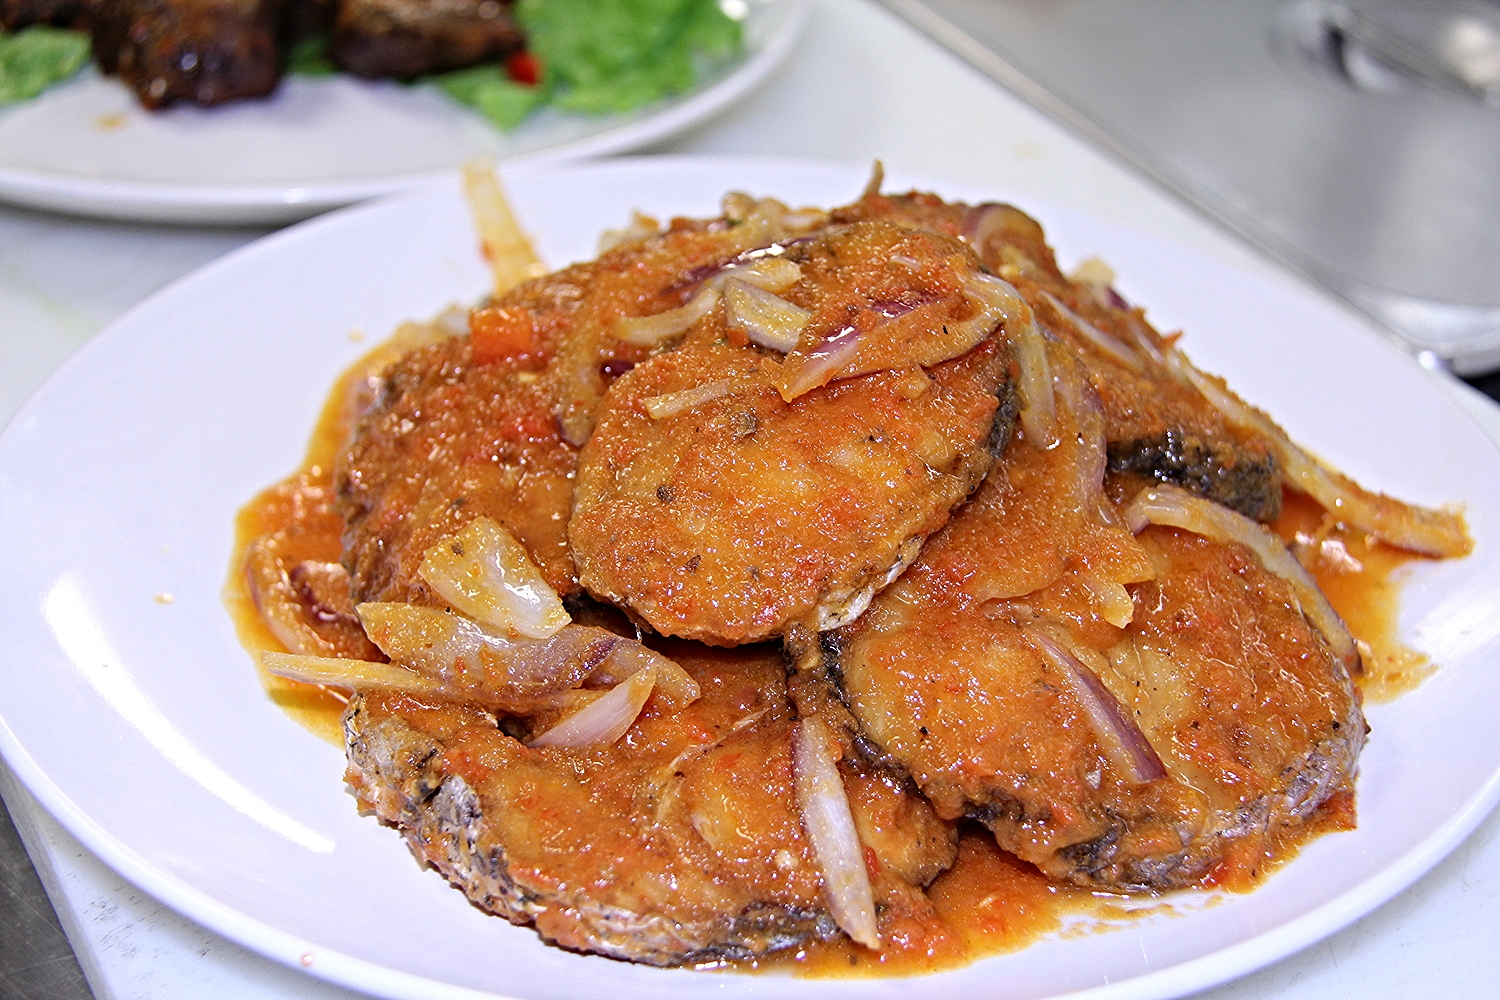 Fried Fish in juicy ssauce